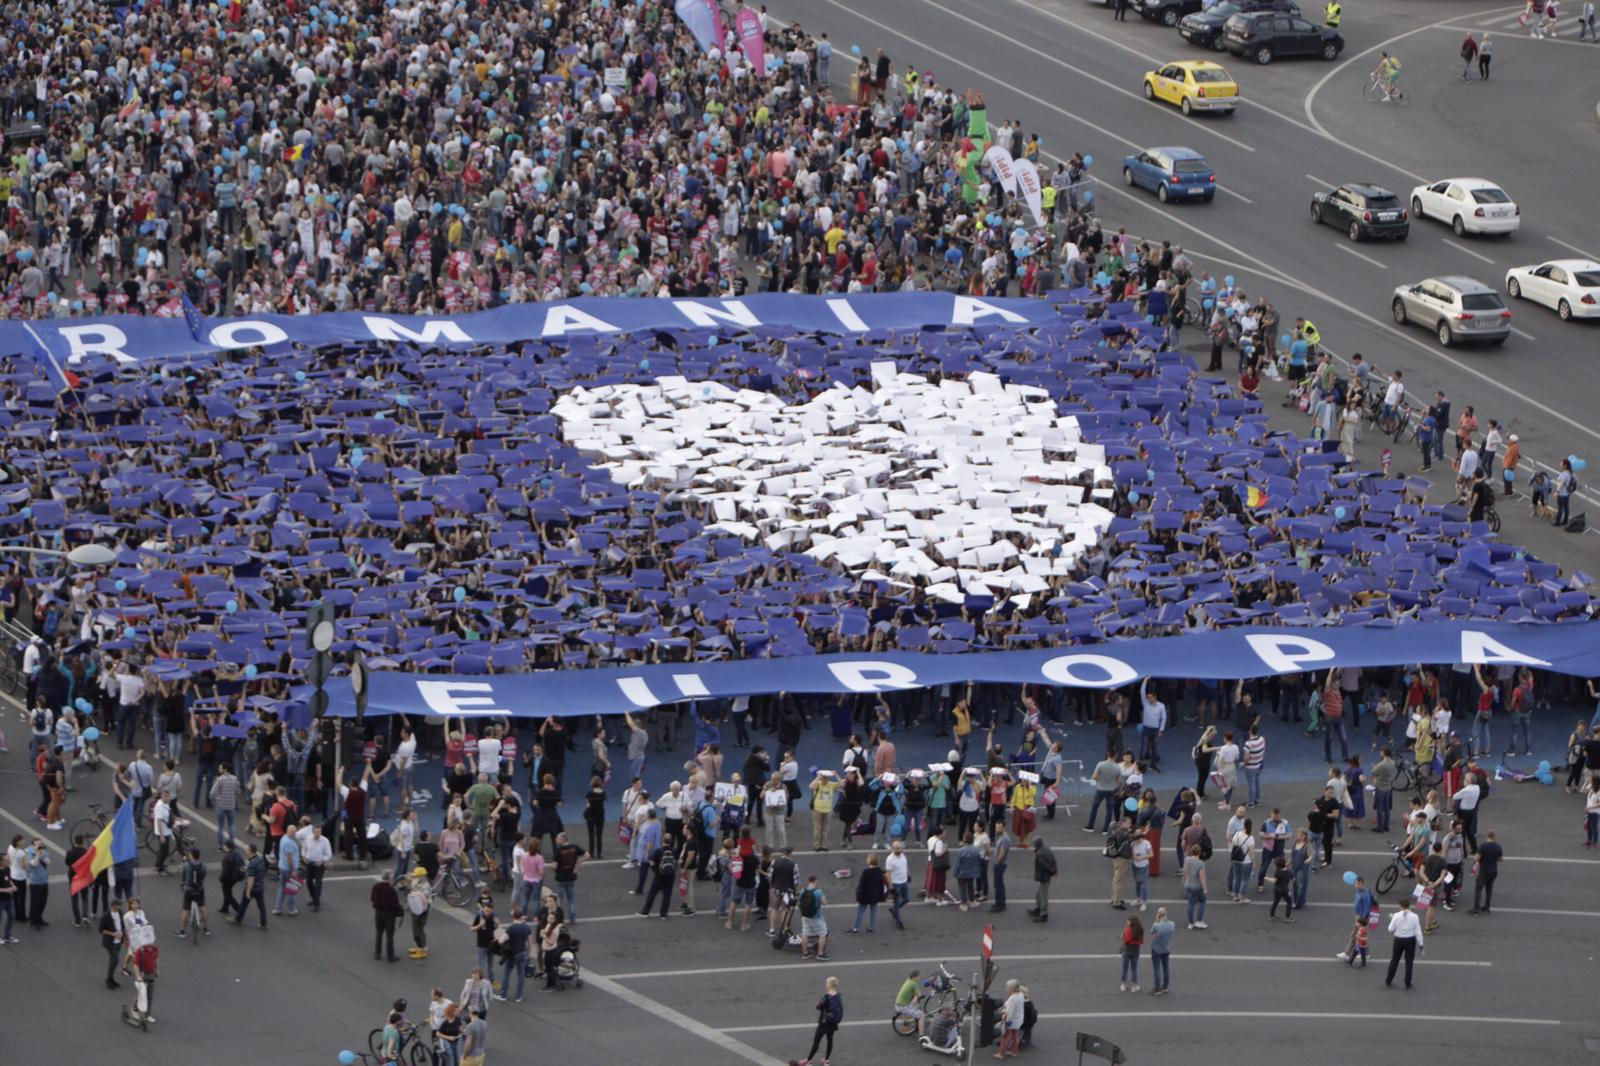 15,000 came together in Bucharest and 5000 Romanians gathered in other locations.